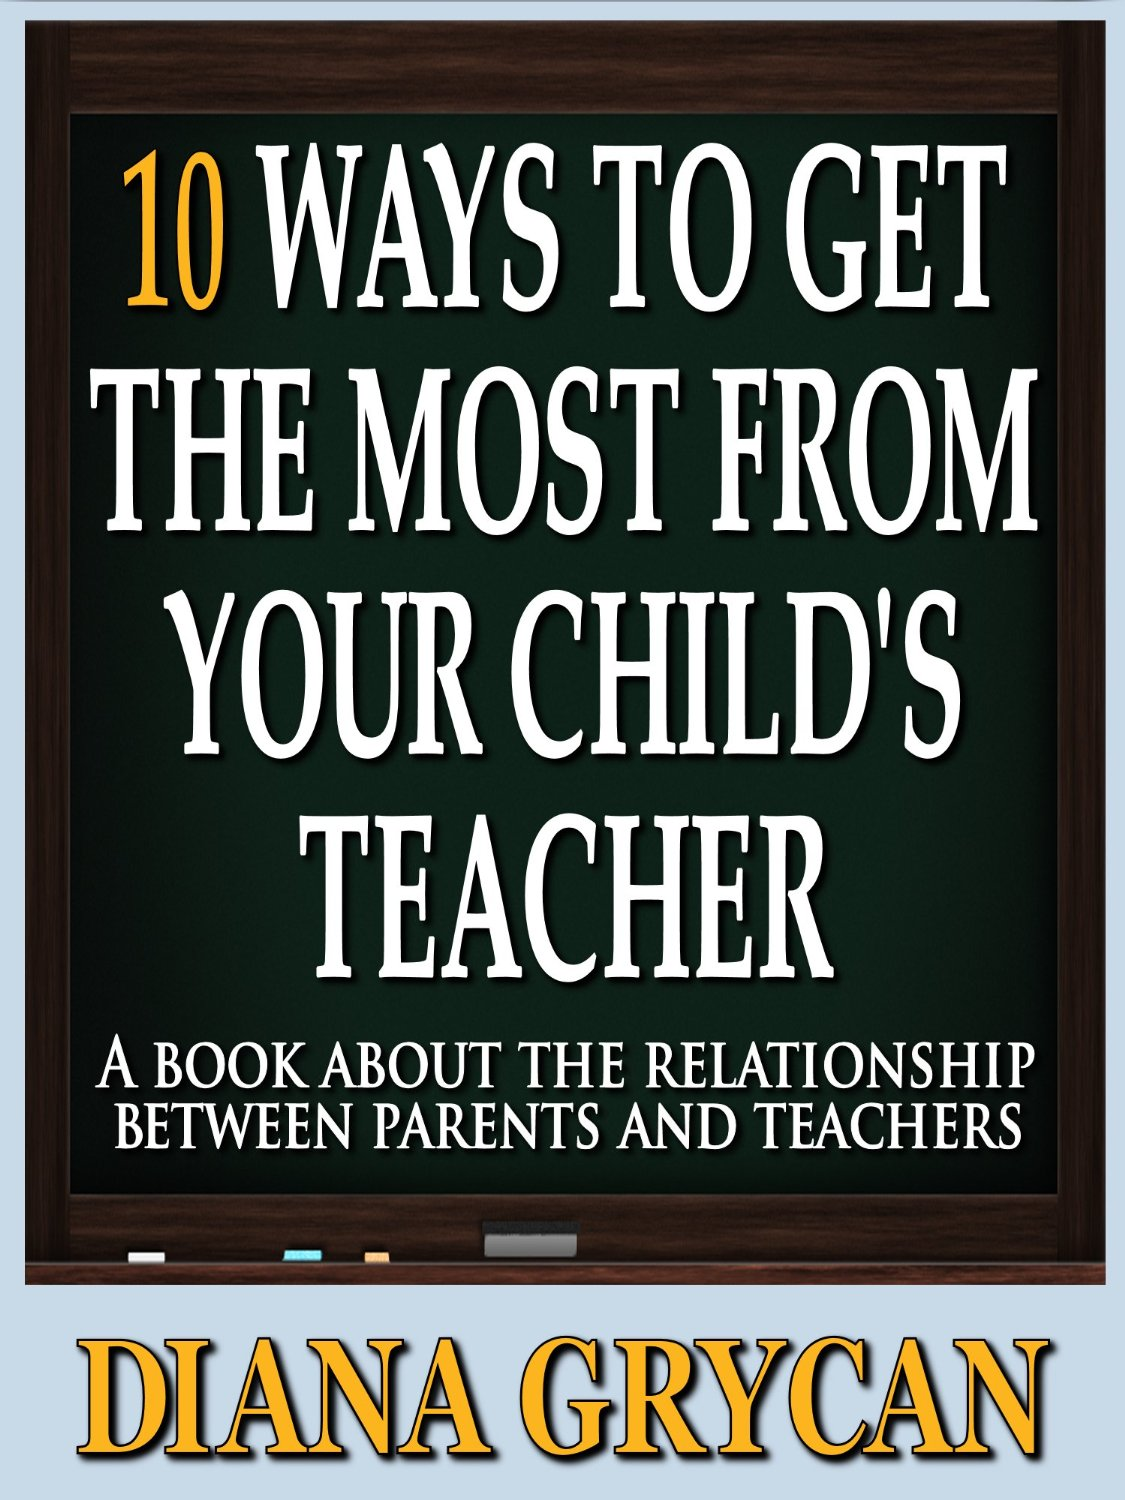 10 Ways to Get the Most from Your Child's Teacher free download